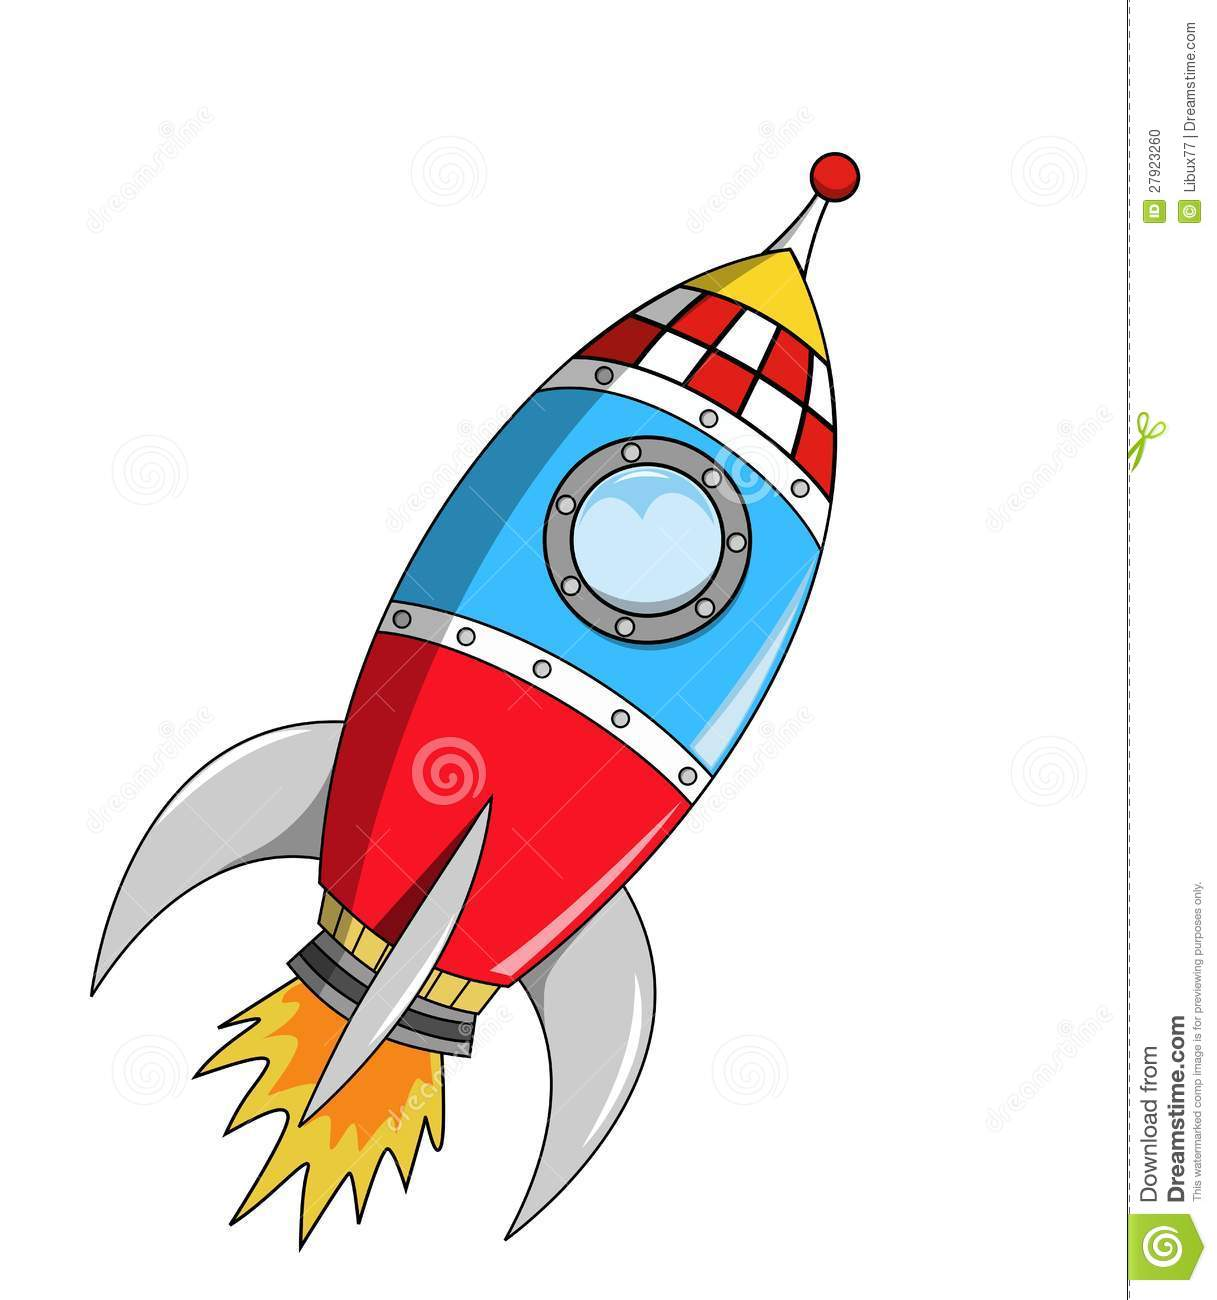 Missile clipart space rocket Million Quality Rocket From 42